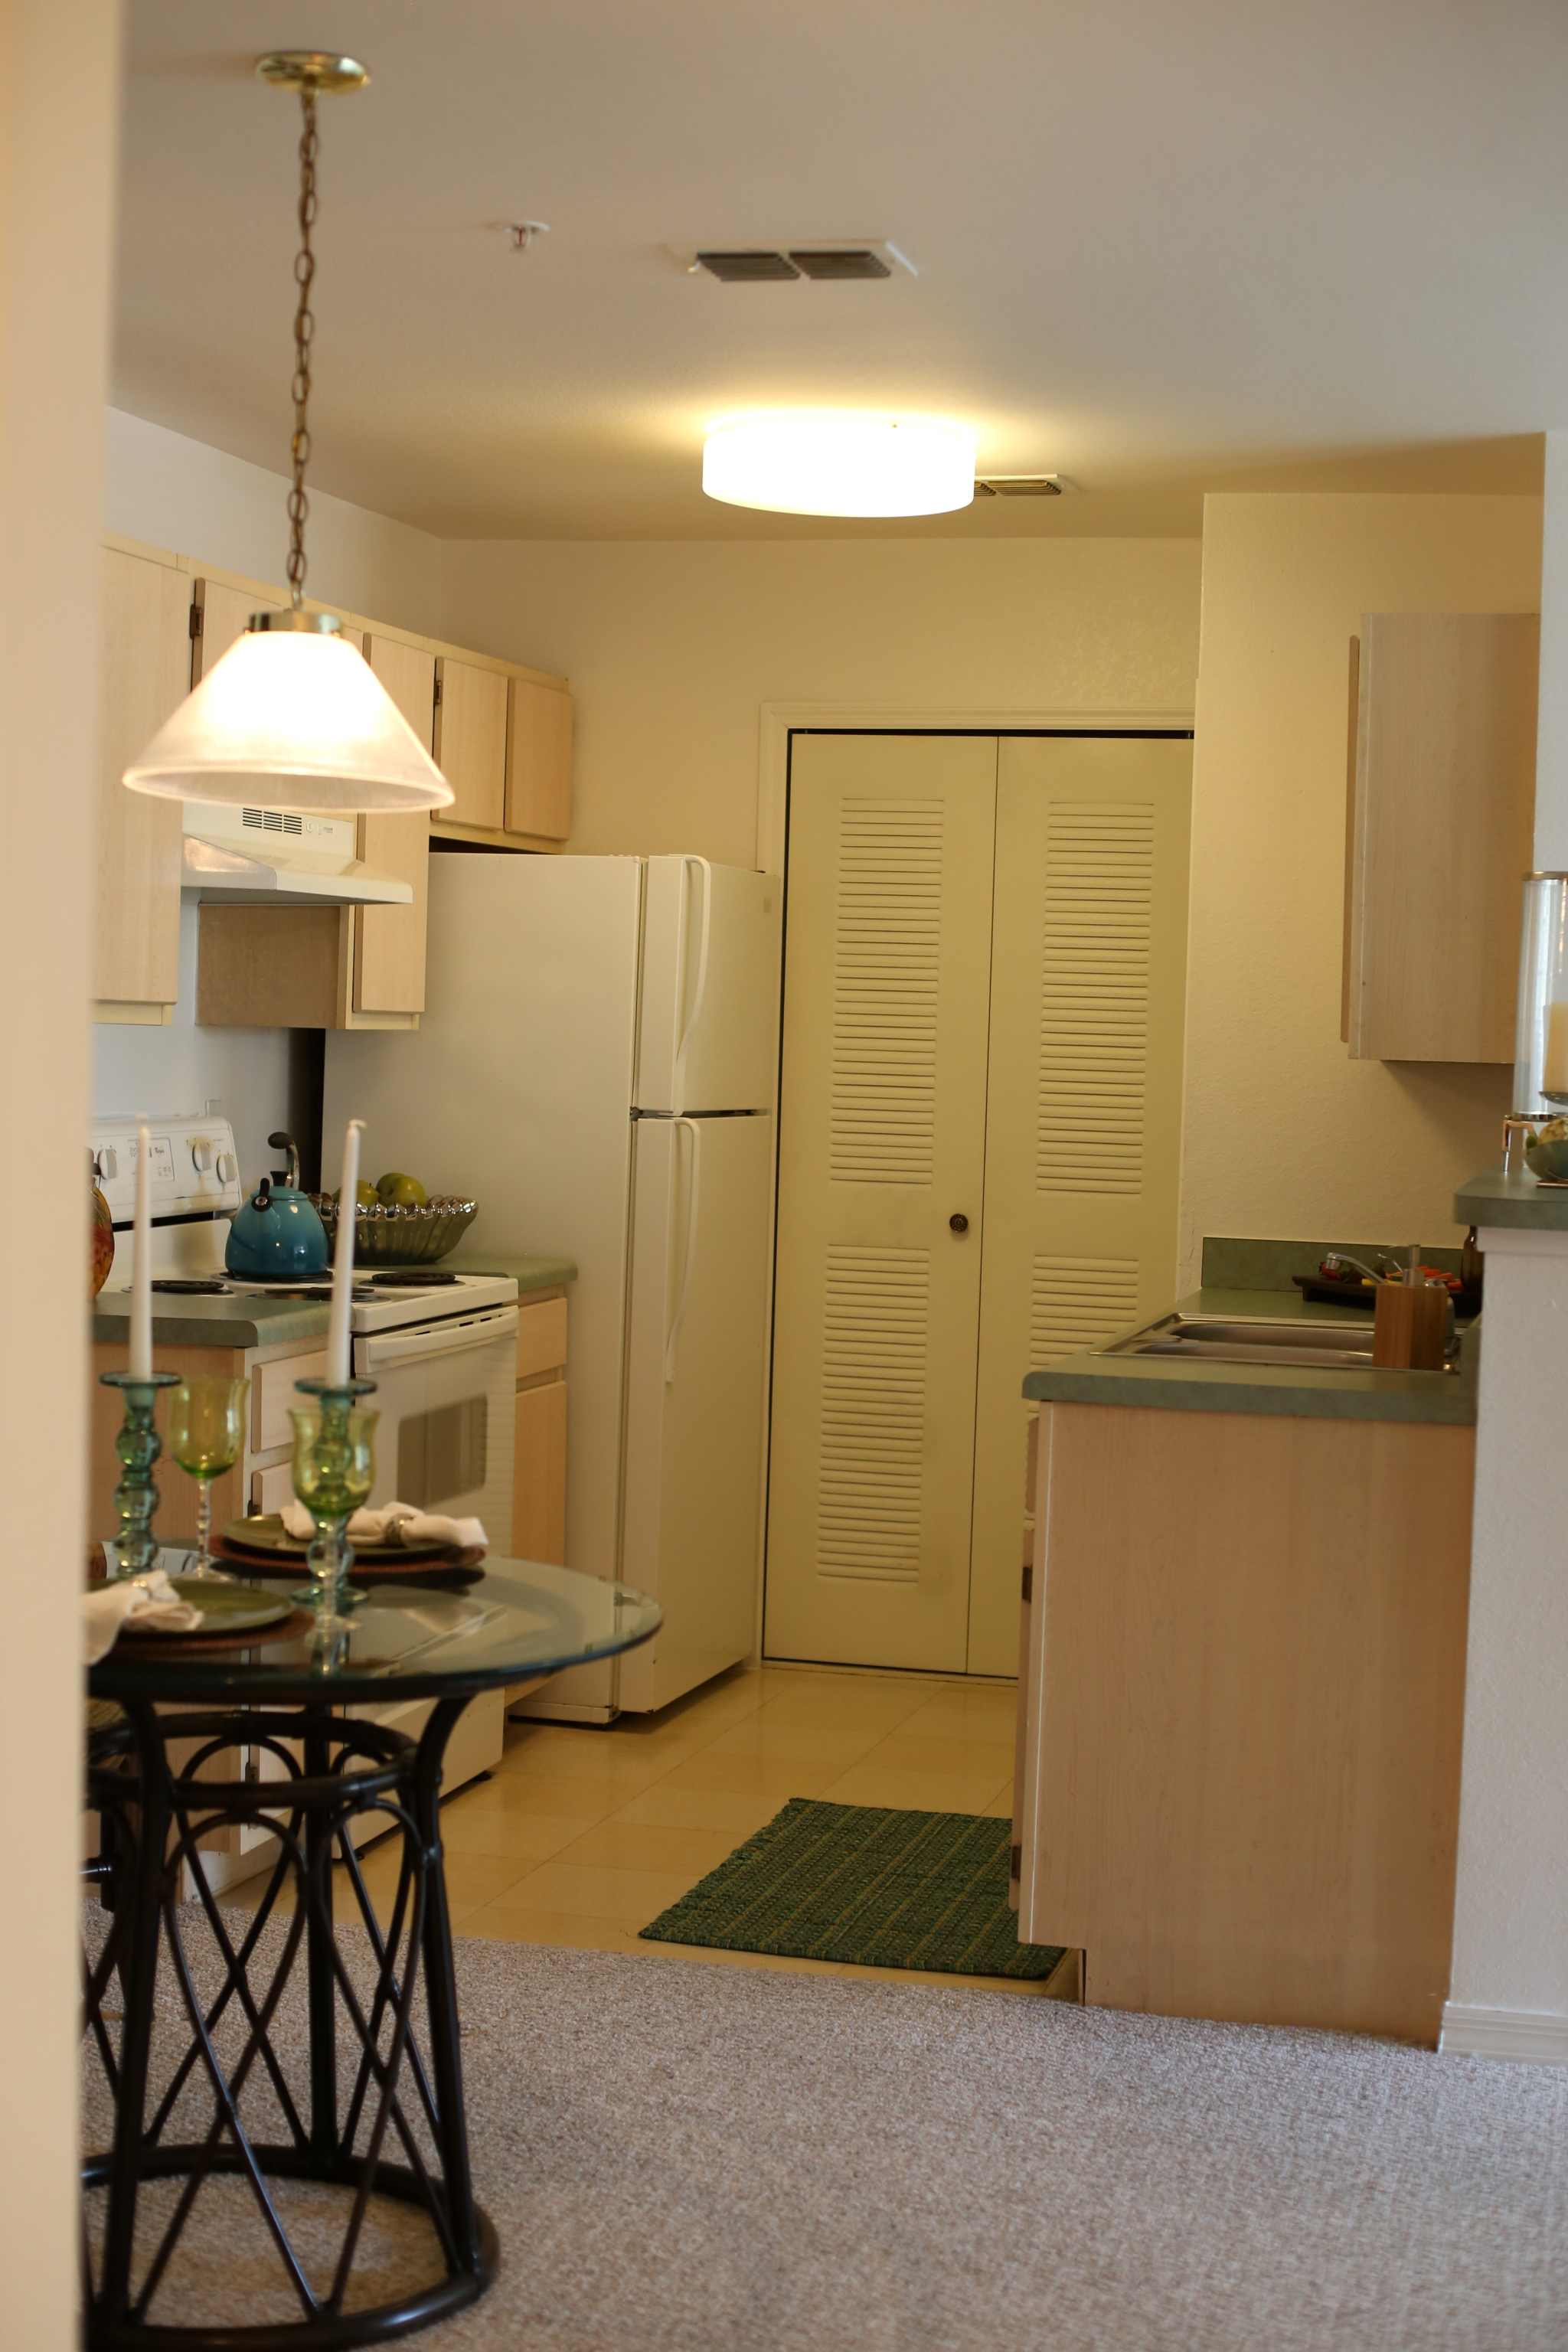 Apartments For Rent In Daytona Beach Fl Charleston Place Apartments